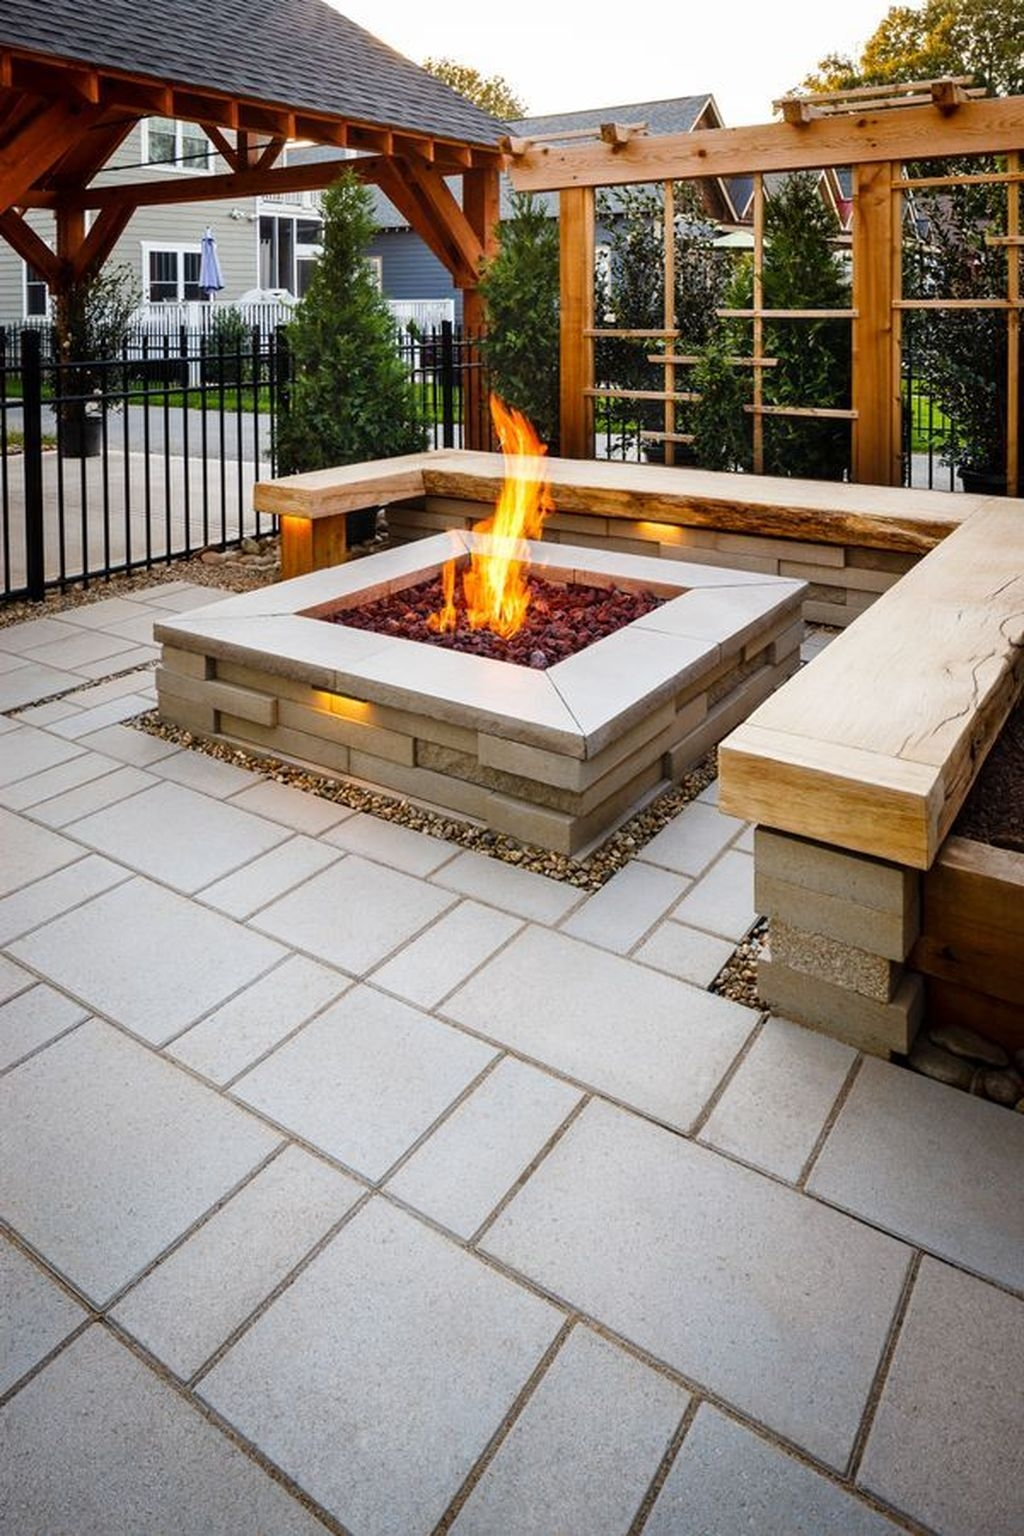 Unordinary Diy Fire Pit Ideas Backyard Landscaping22